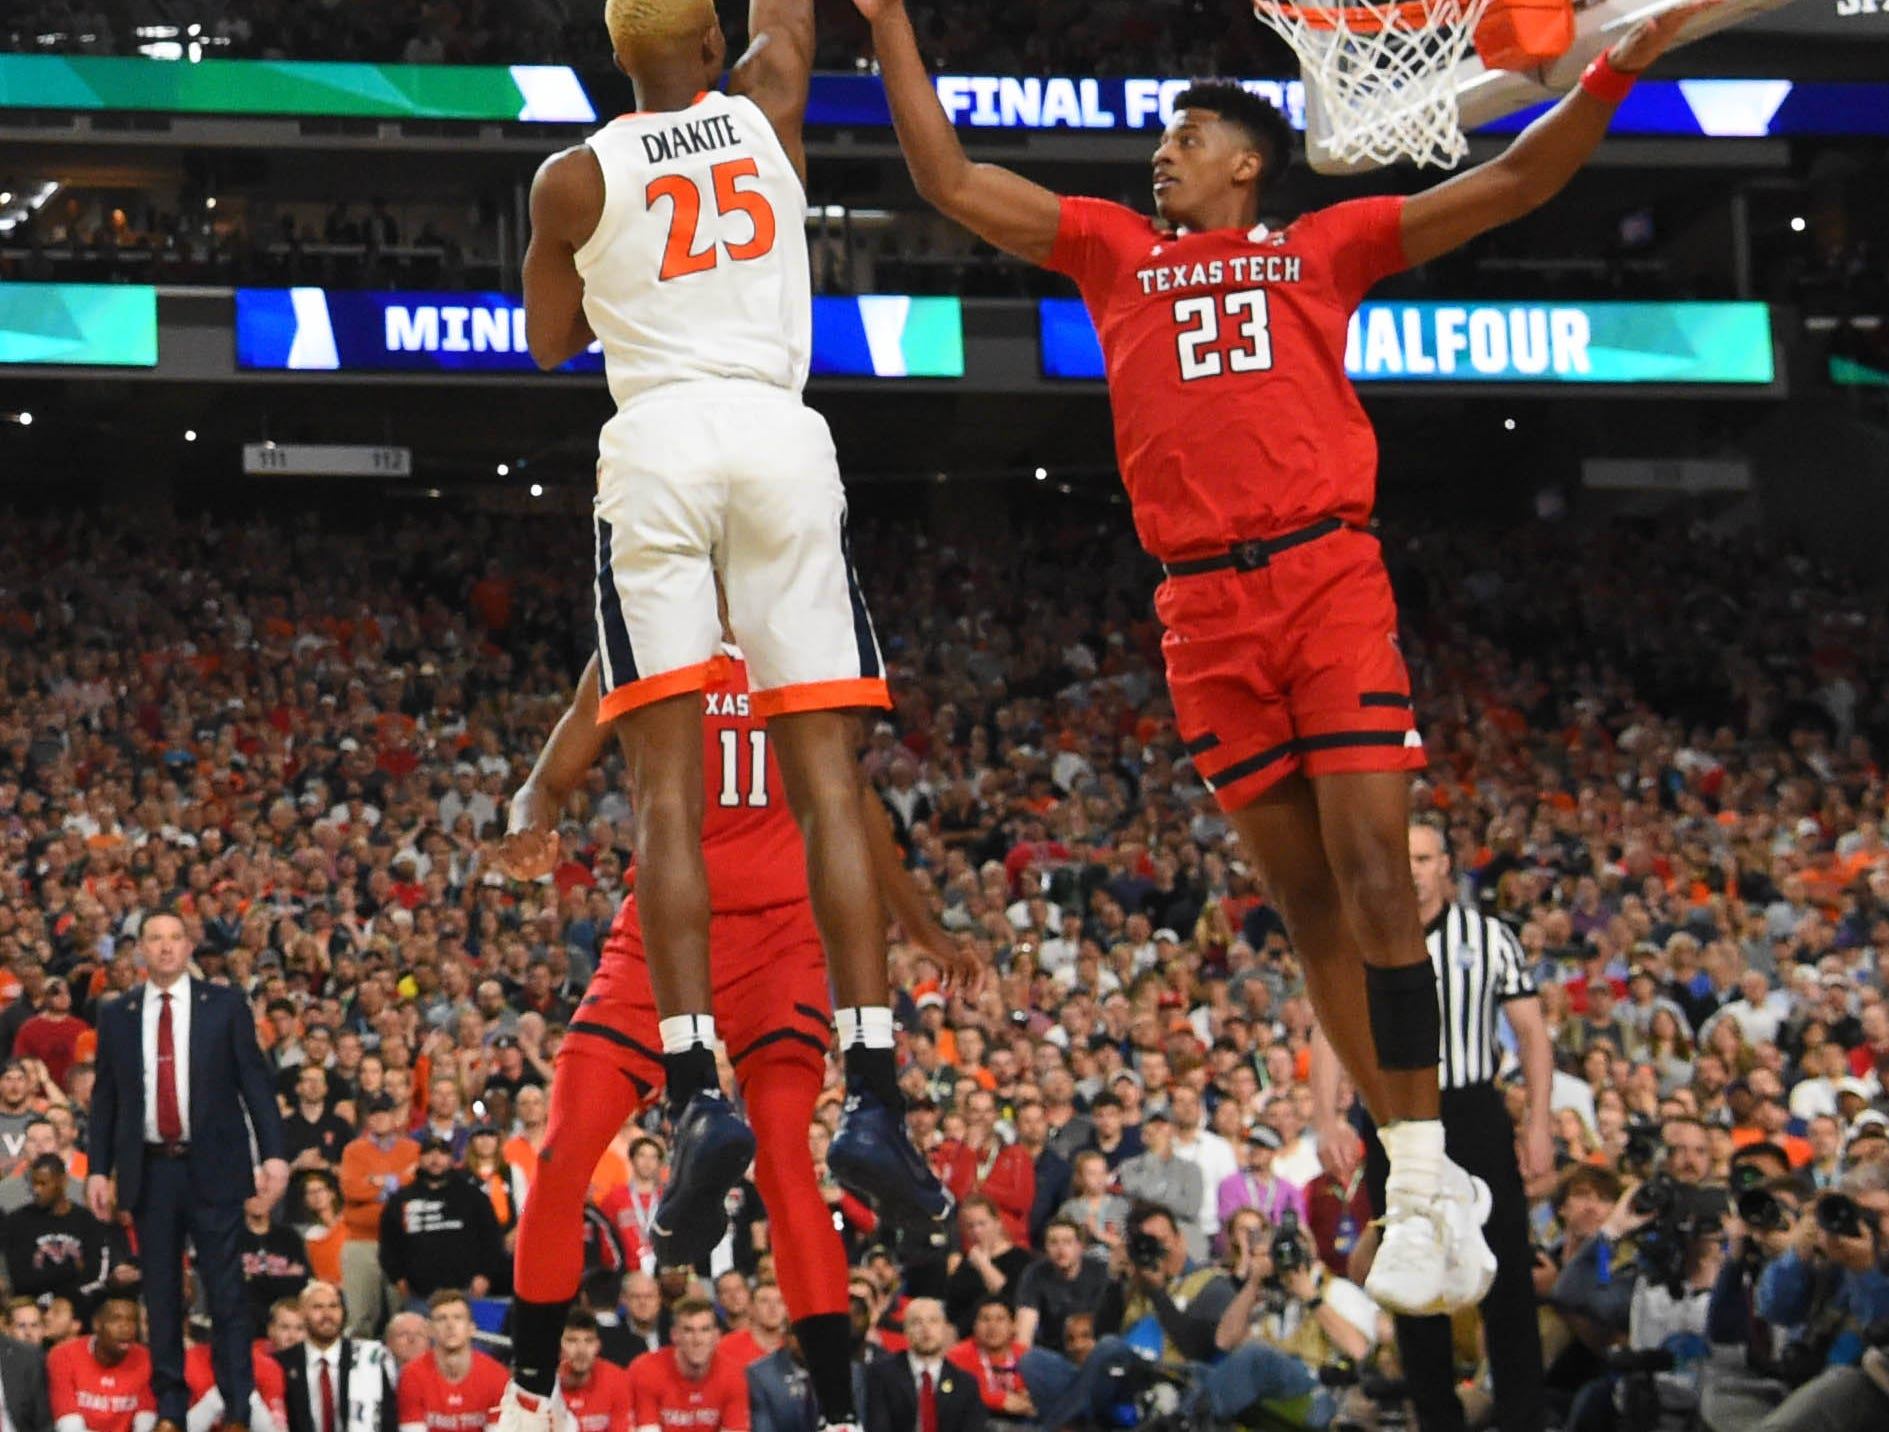 Apr 8, 2019; Minneapolis, MN, USA; Virginia Cavaliers forward Mamadi Diakite (25) over Texas Tech Red Raiders guard Jarrett Culver (23) during the first half in the championship game of the 2019 men's Final Four at US Bank Stadium. Mandatory Credit: Bob Donnan-USA TODAY Sports